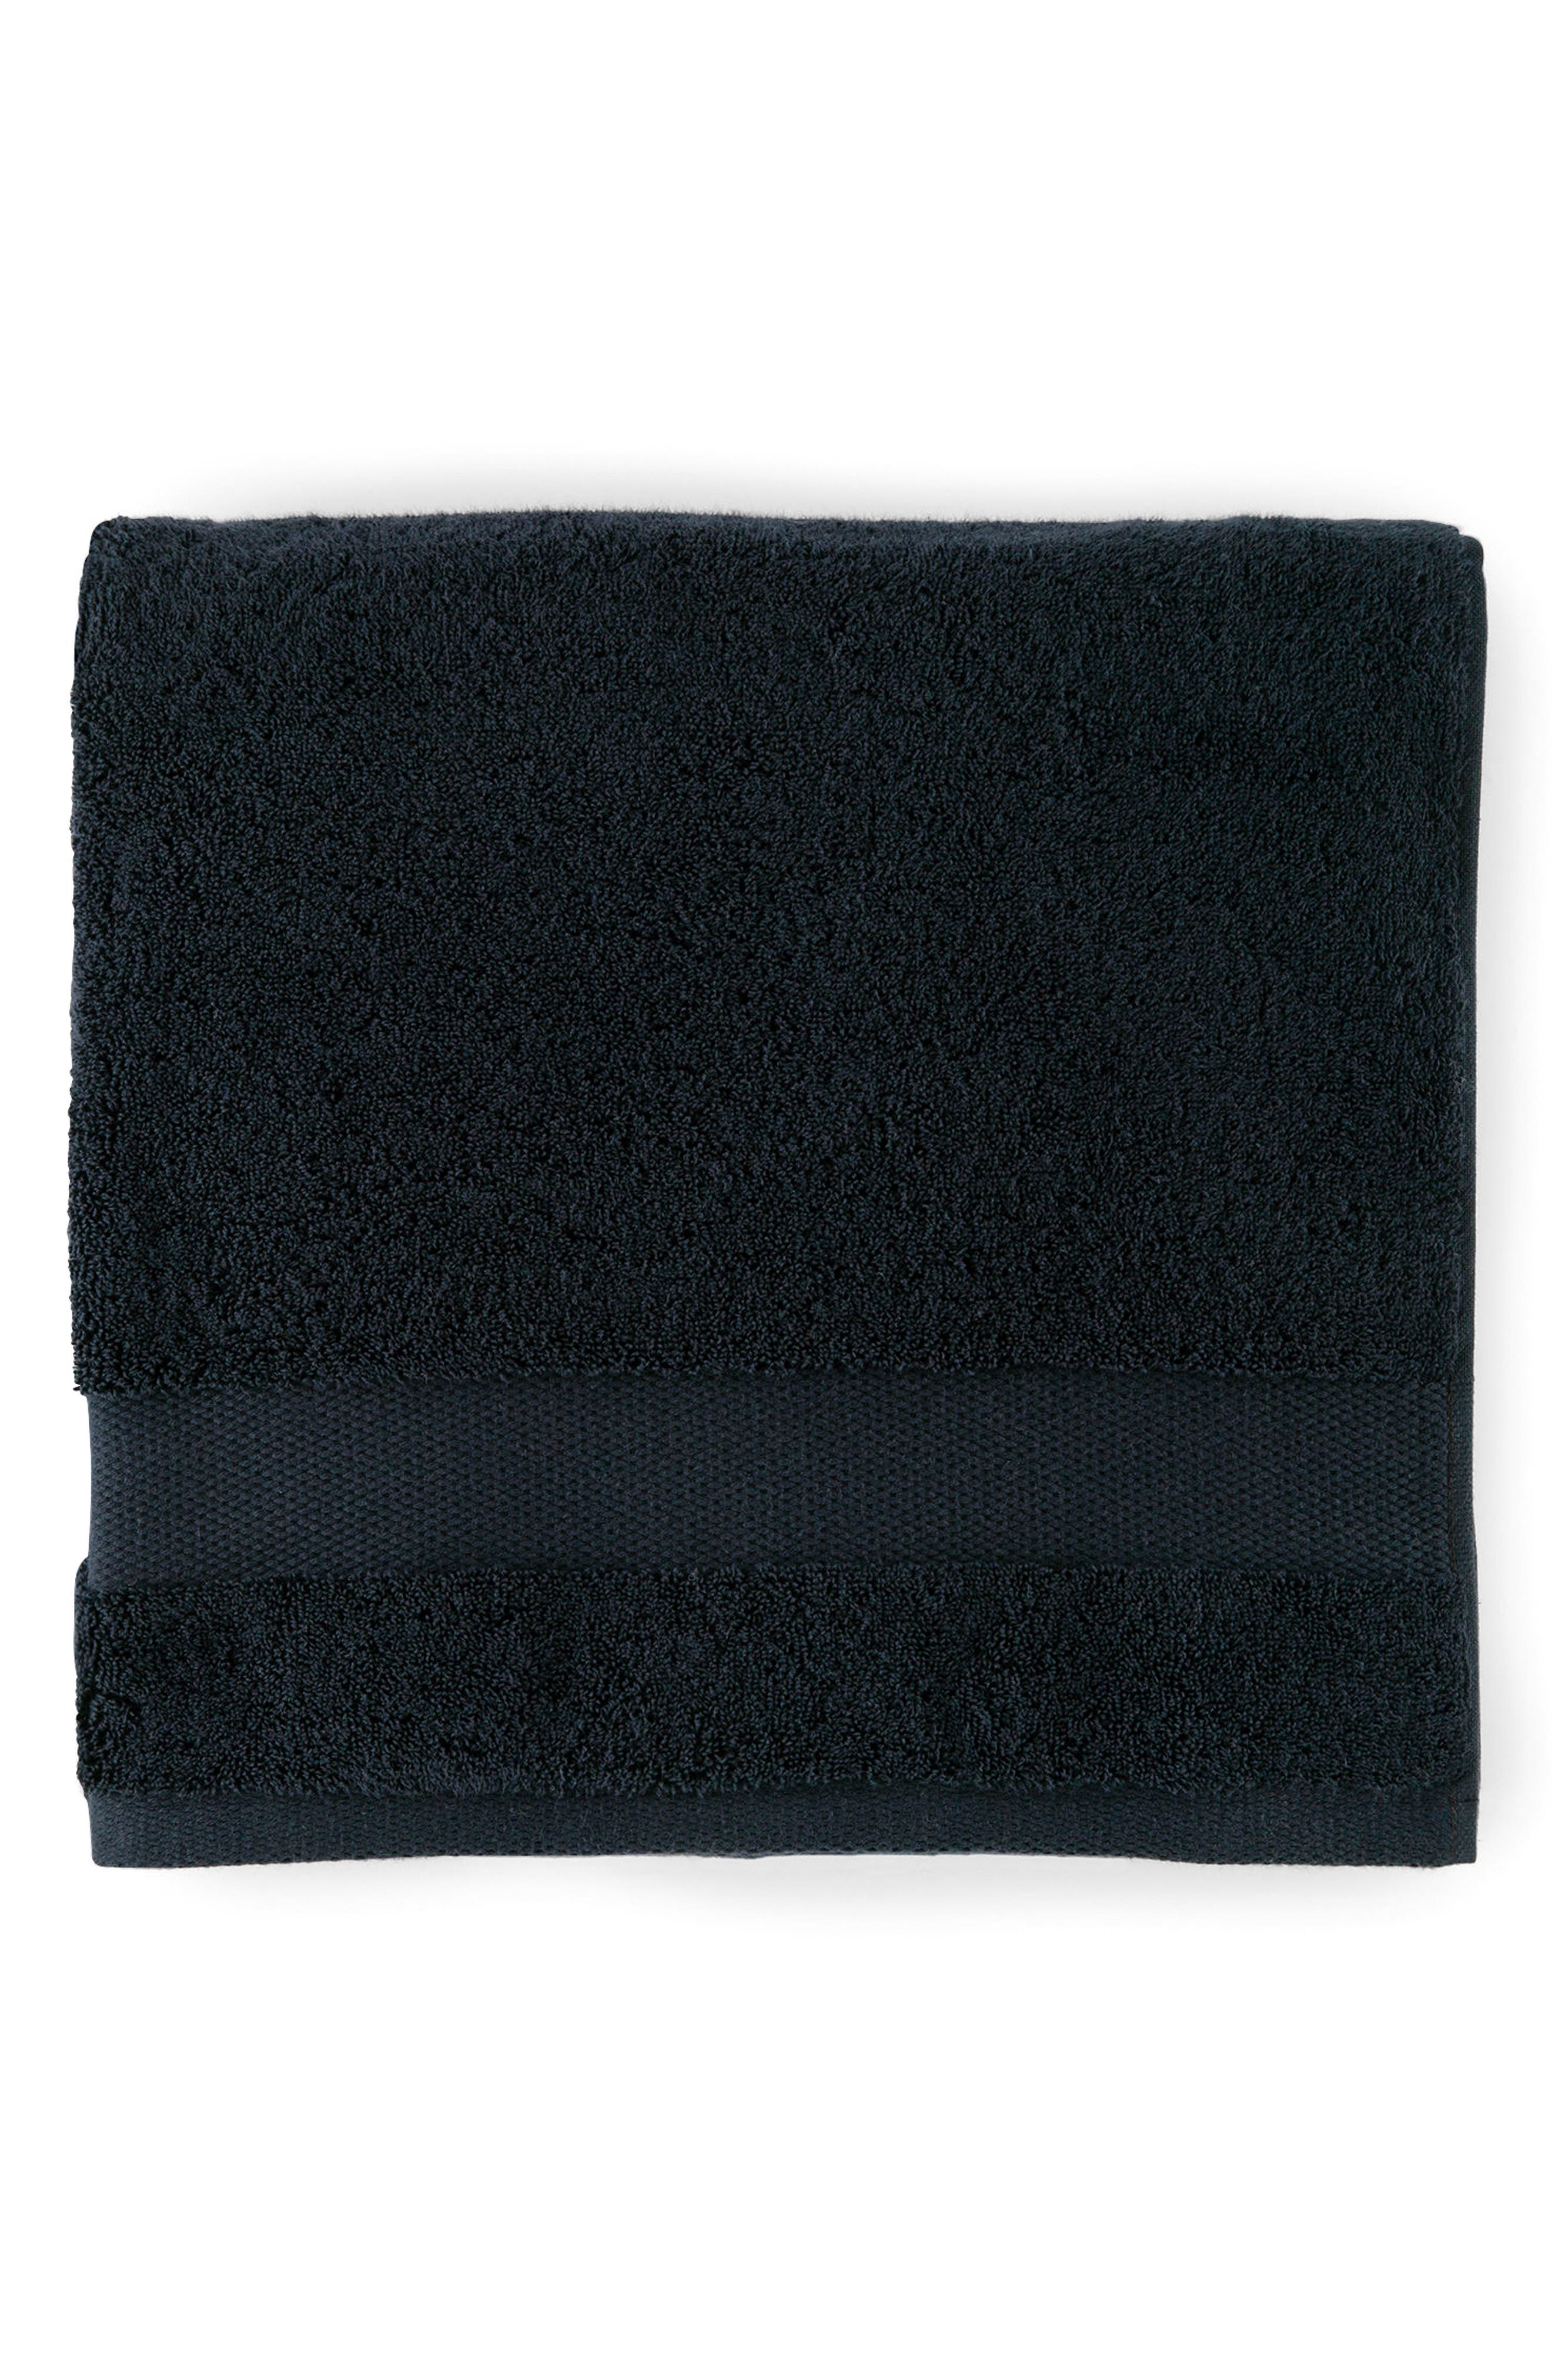 Bello Hand Towel,                             Main thumbnail 1, color,                             Black